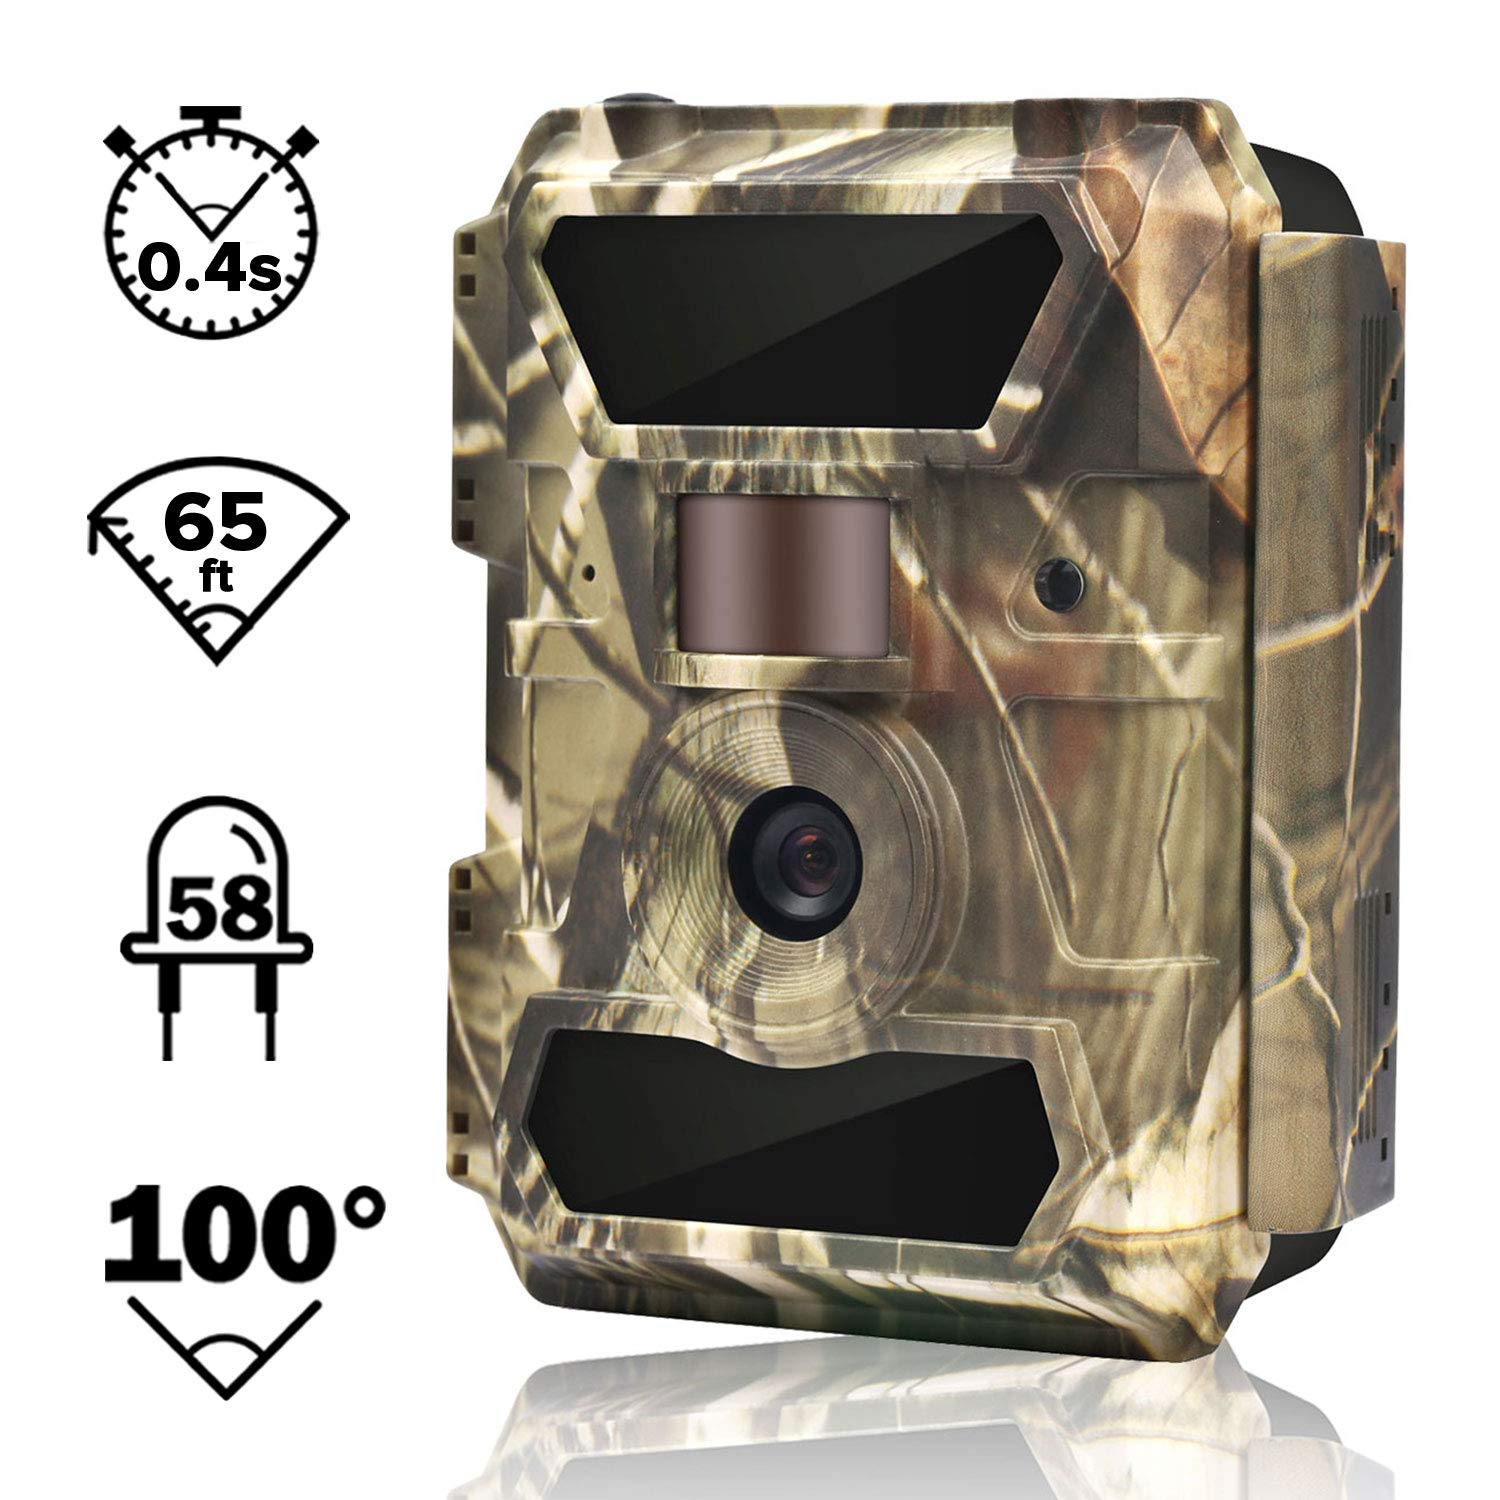 WingHome Trail Camera, 12 16 22MP 1080P Game Camera with Night Vision No Glow, 0.4s Trigger Time Outdoor Wildlife Camera Motion Activated Waterproof, 58pcs IR LEDs Infrared Hunting Camera